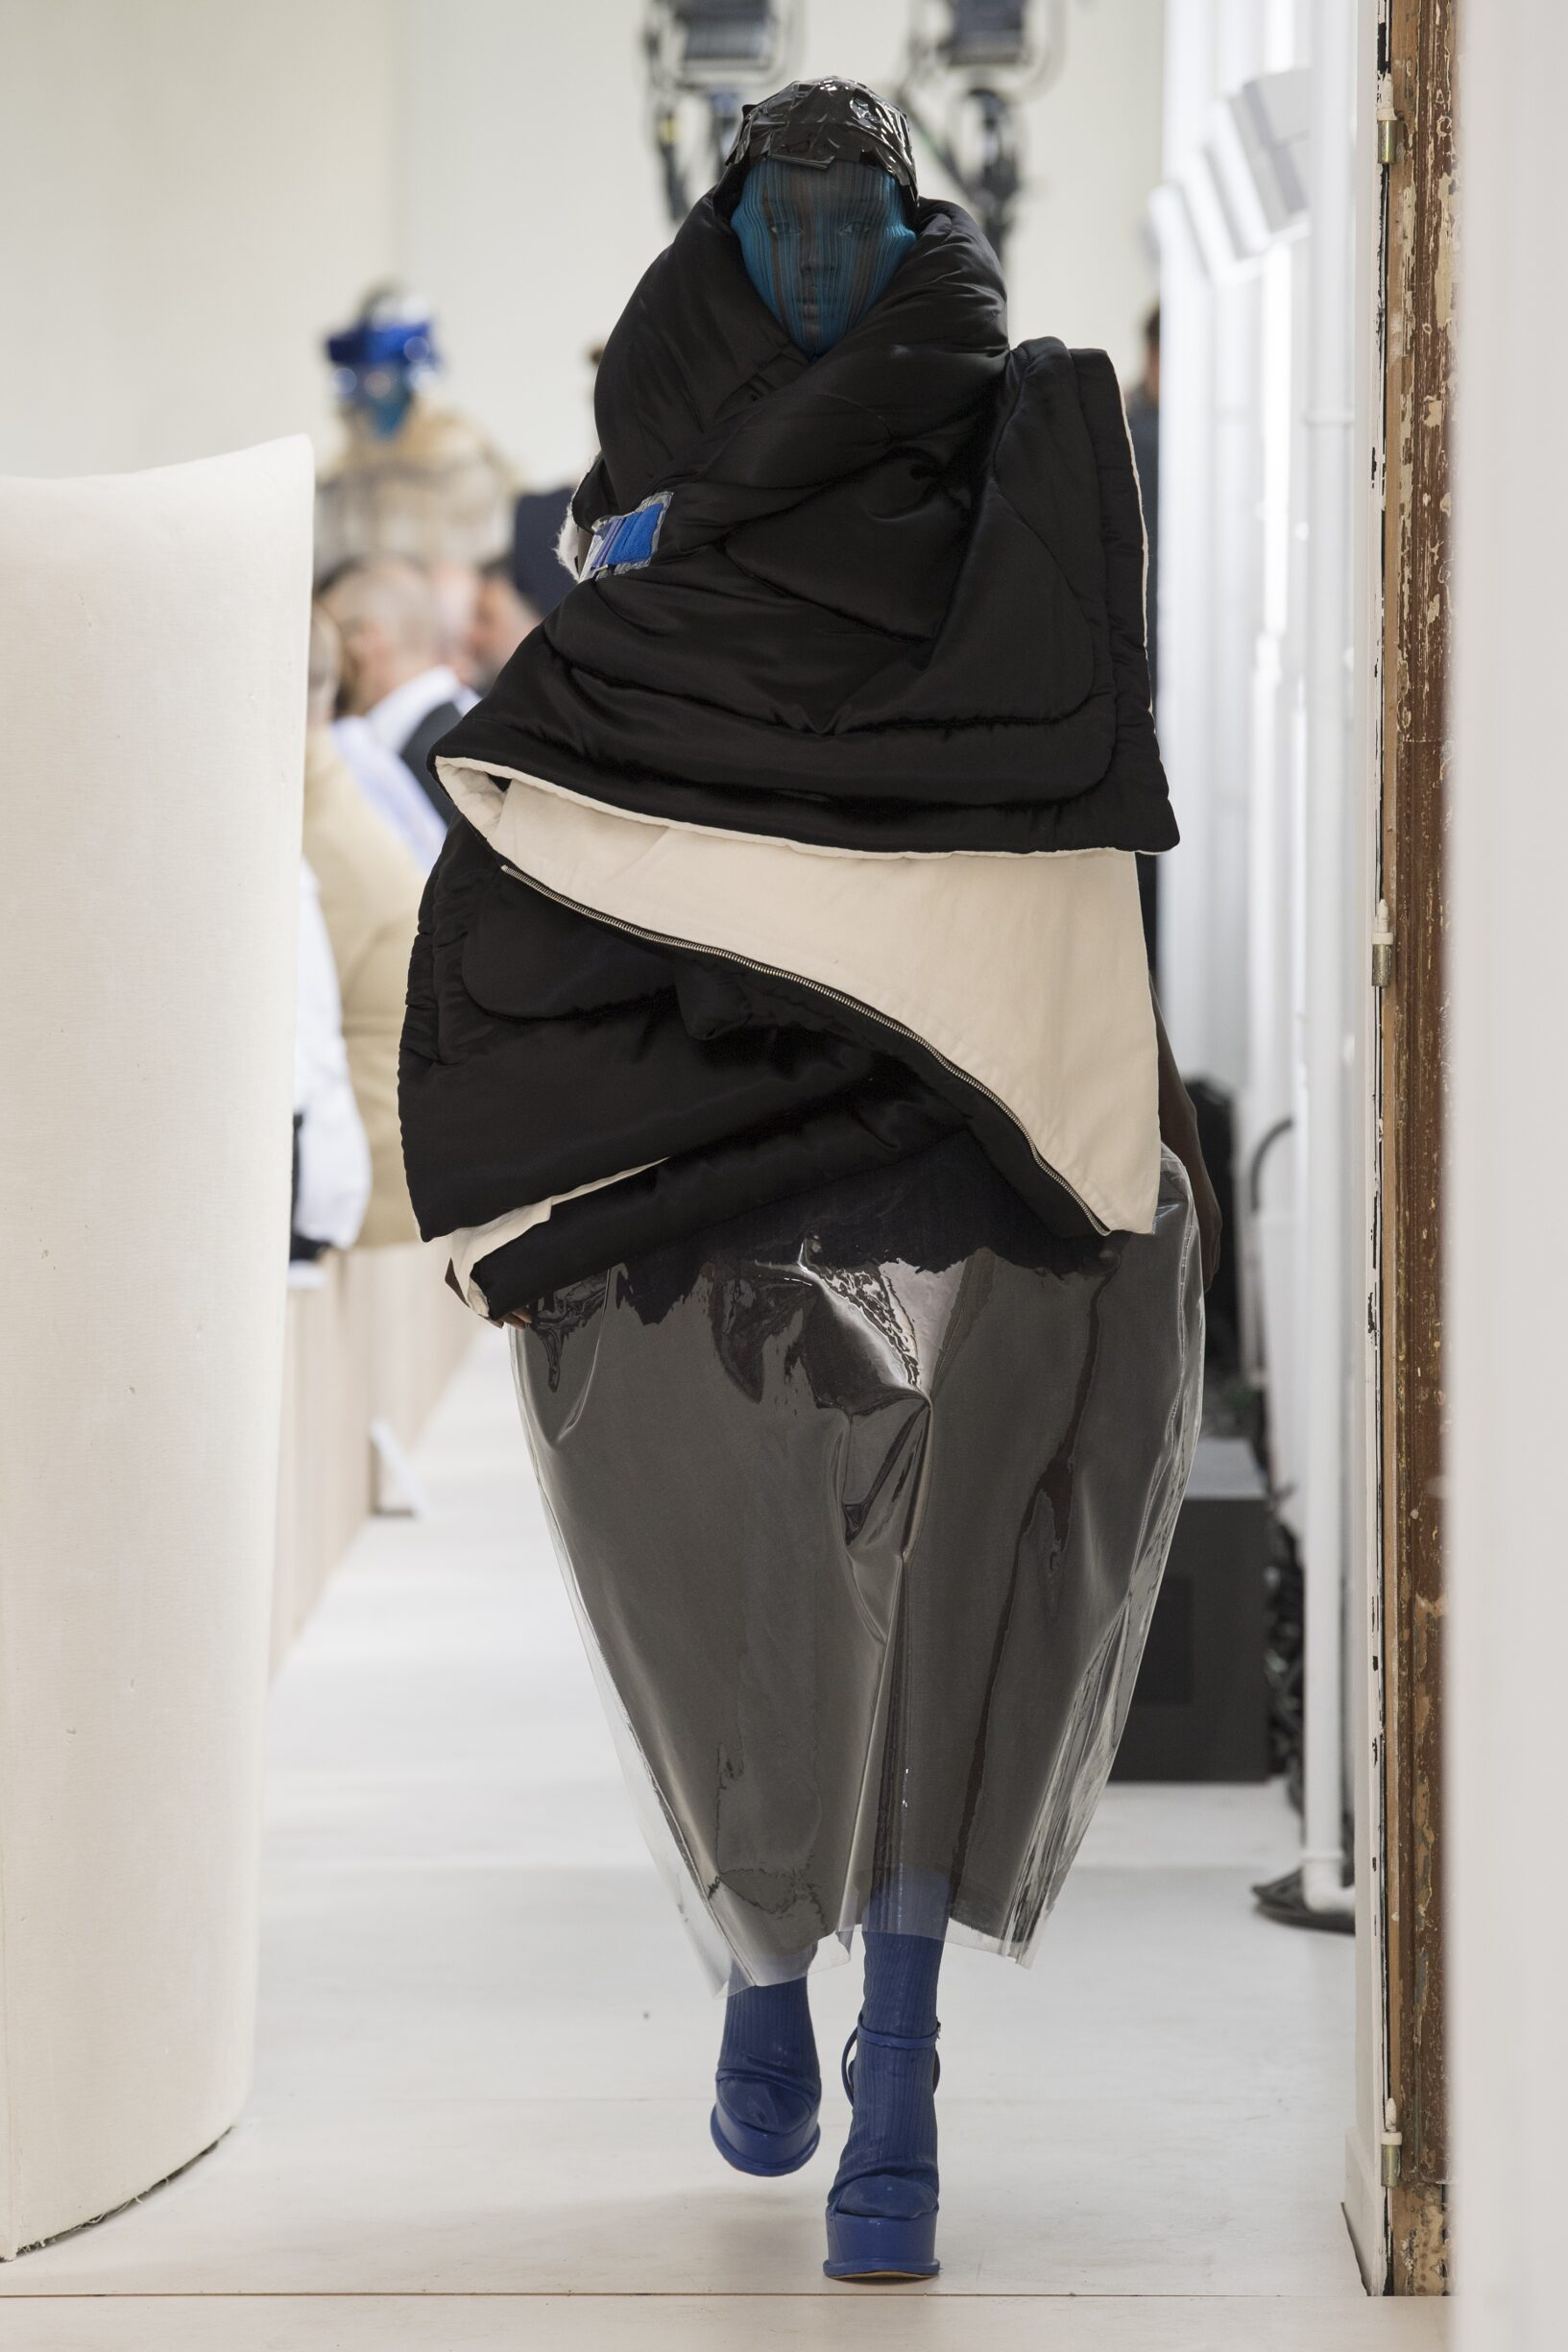 Catwalk Maison Margiela Artisanal Women Fashion Show Winter 2018